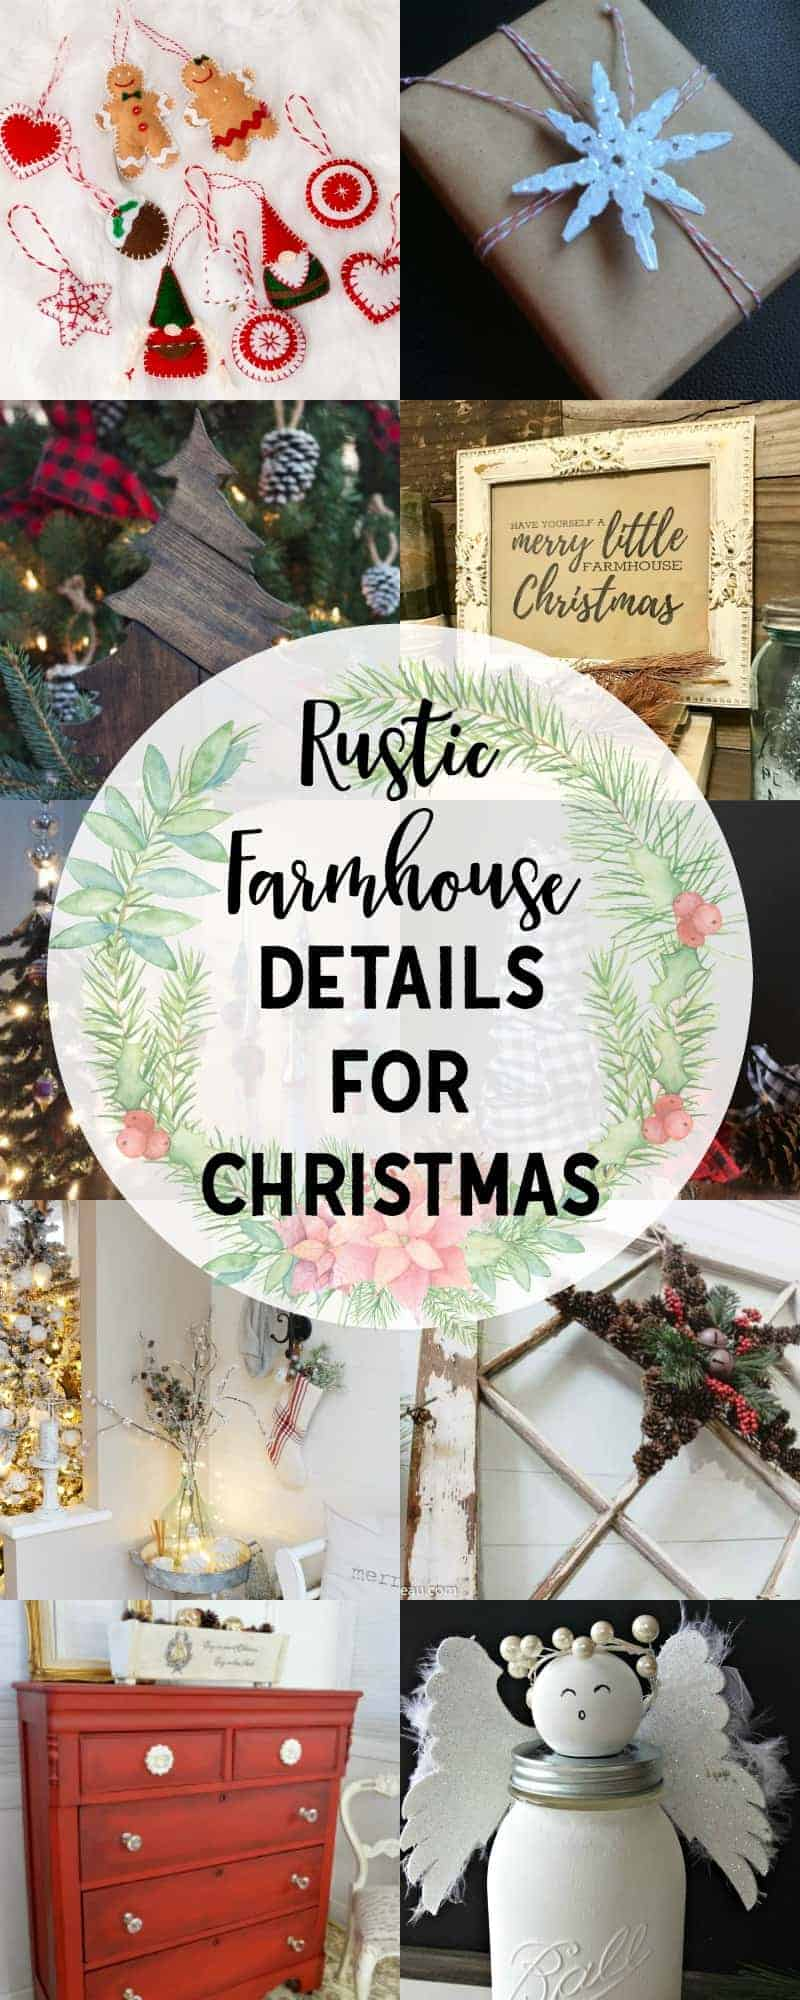 Pictures of beautiful rustic farmhouse Christmas decor